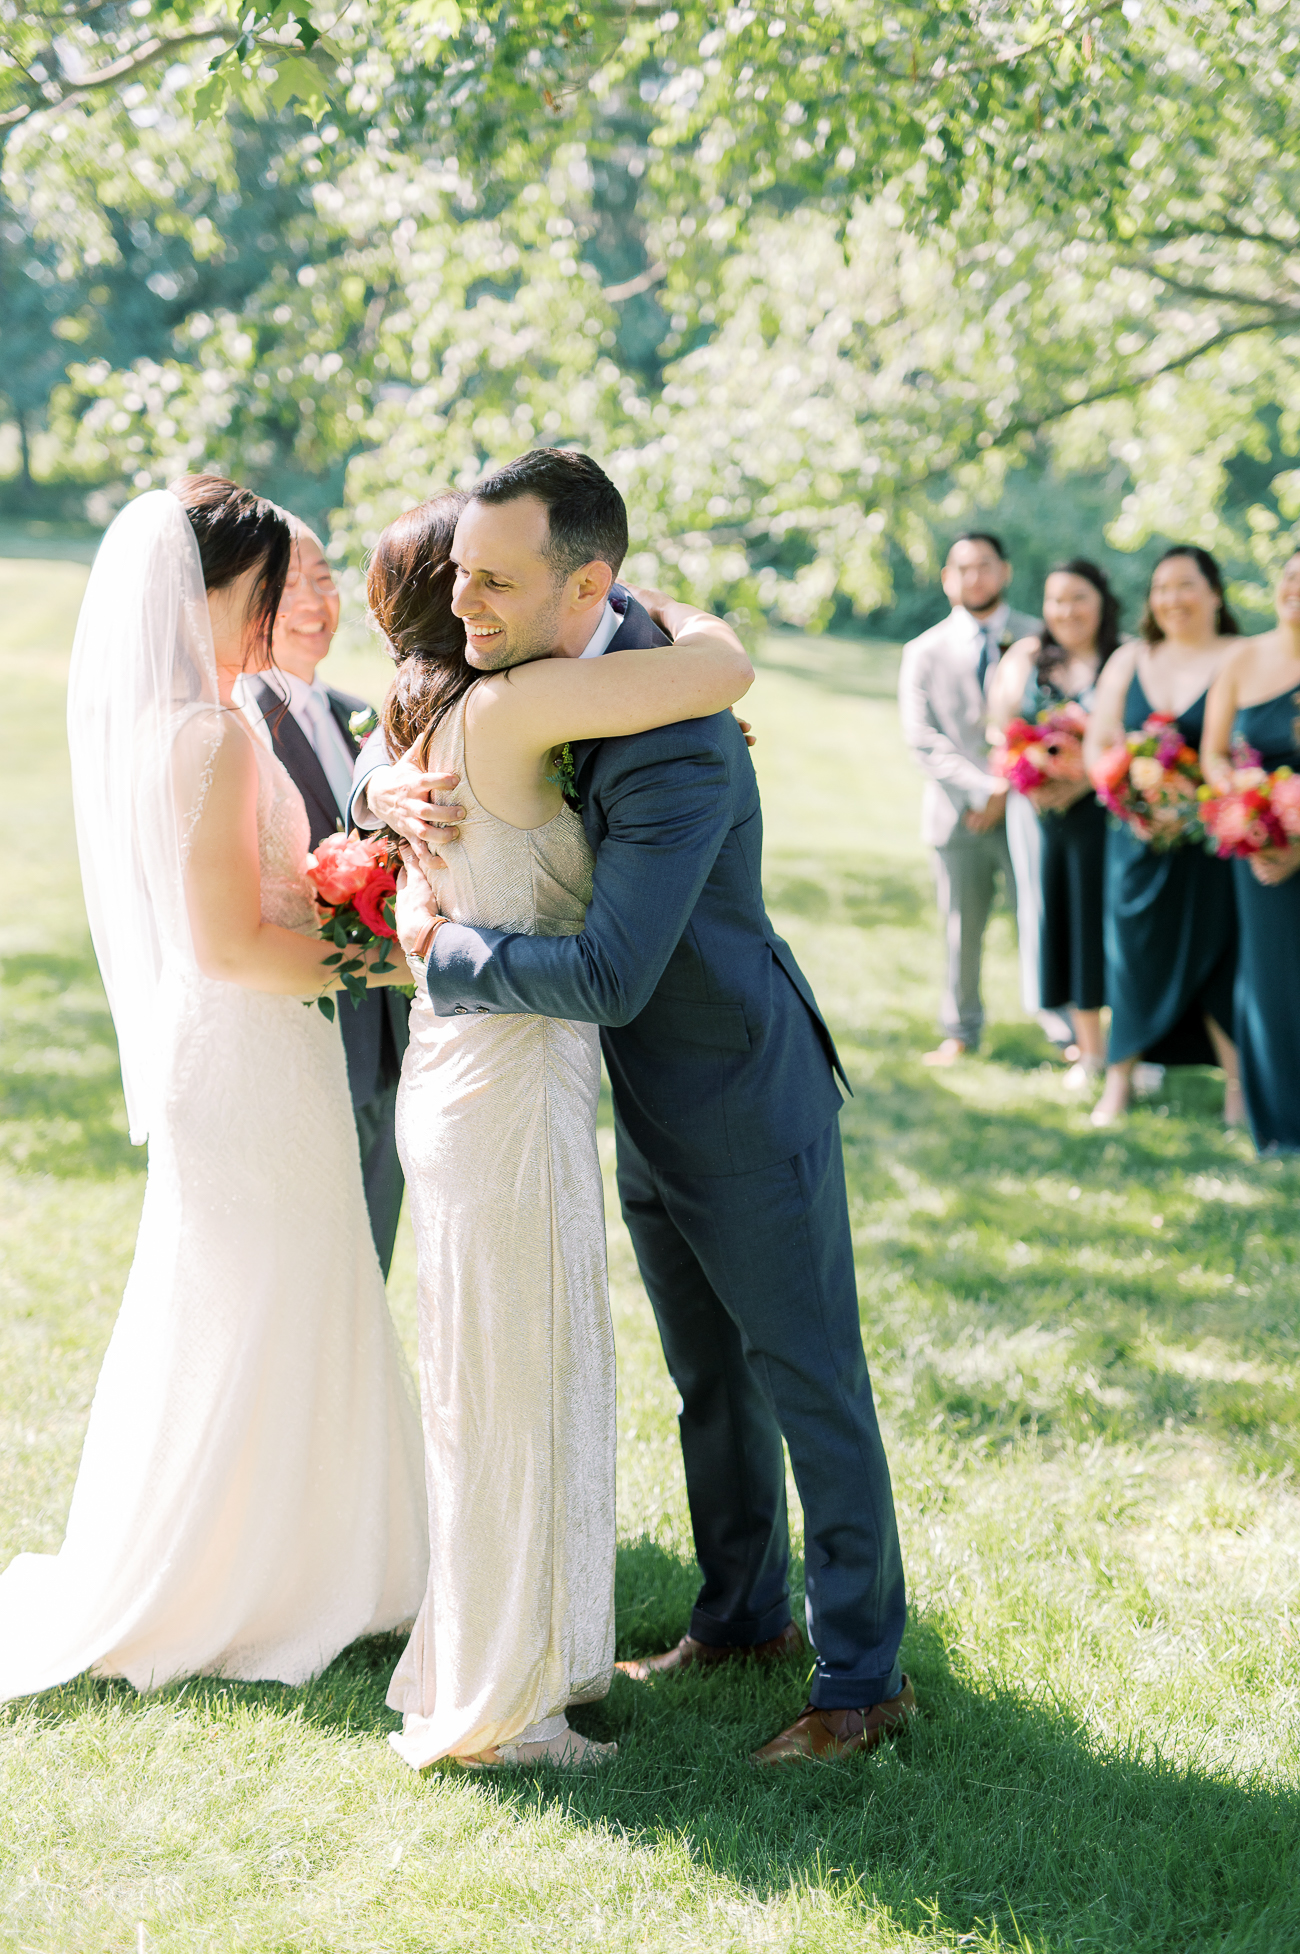 Justin hugging Judy at the end of the aisle